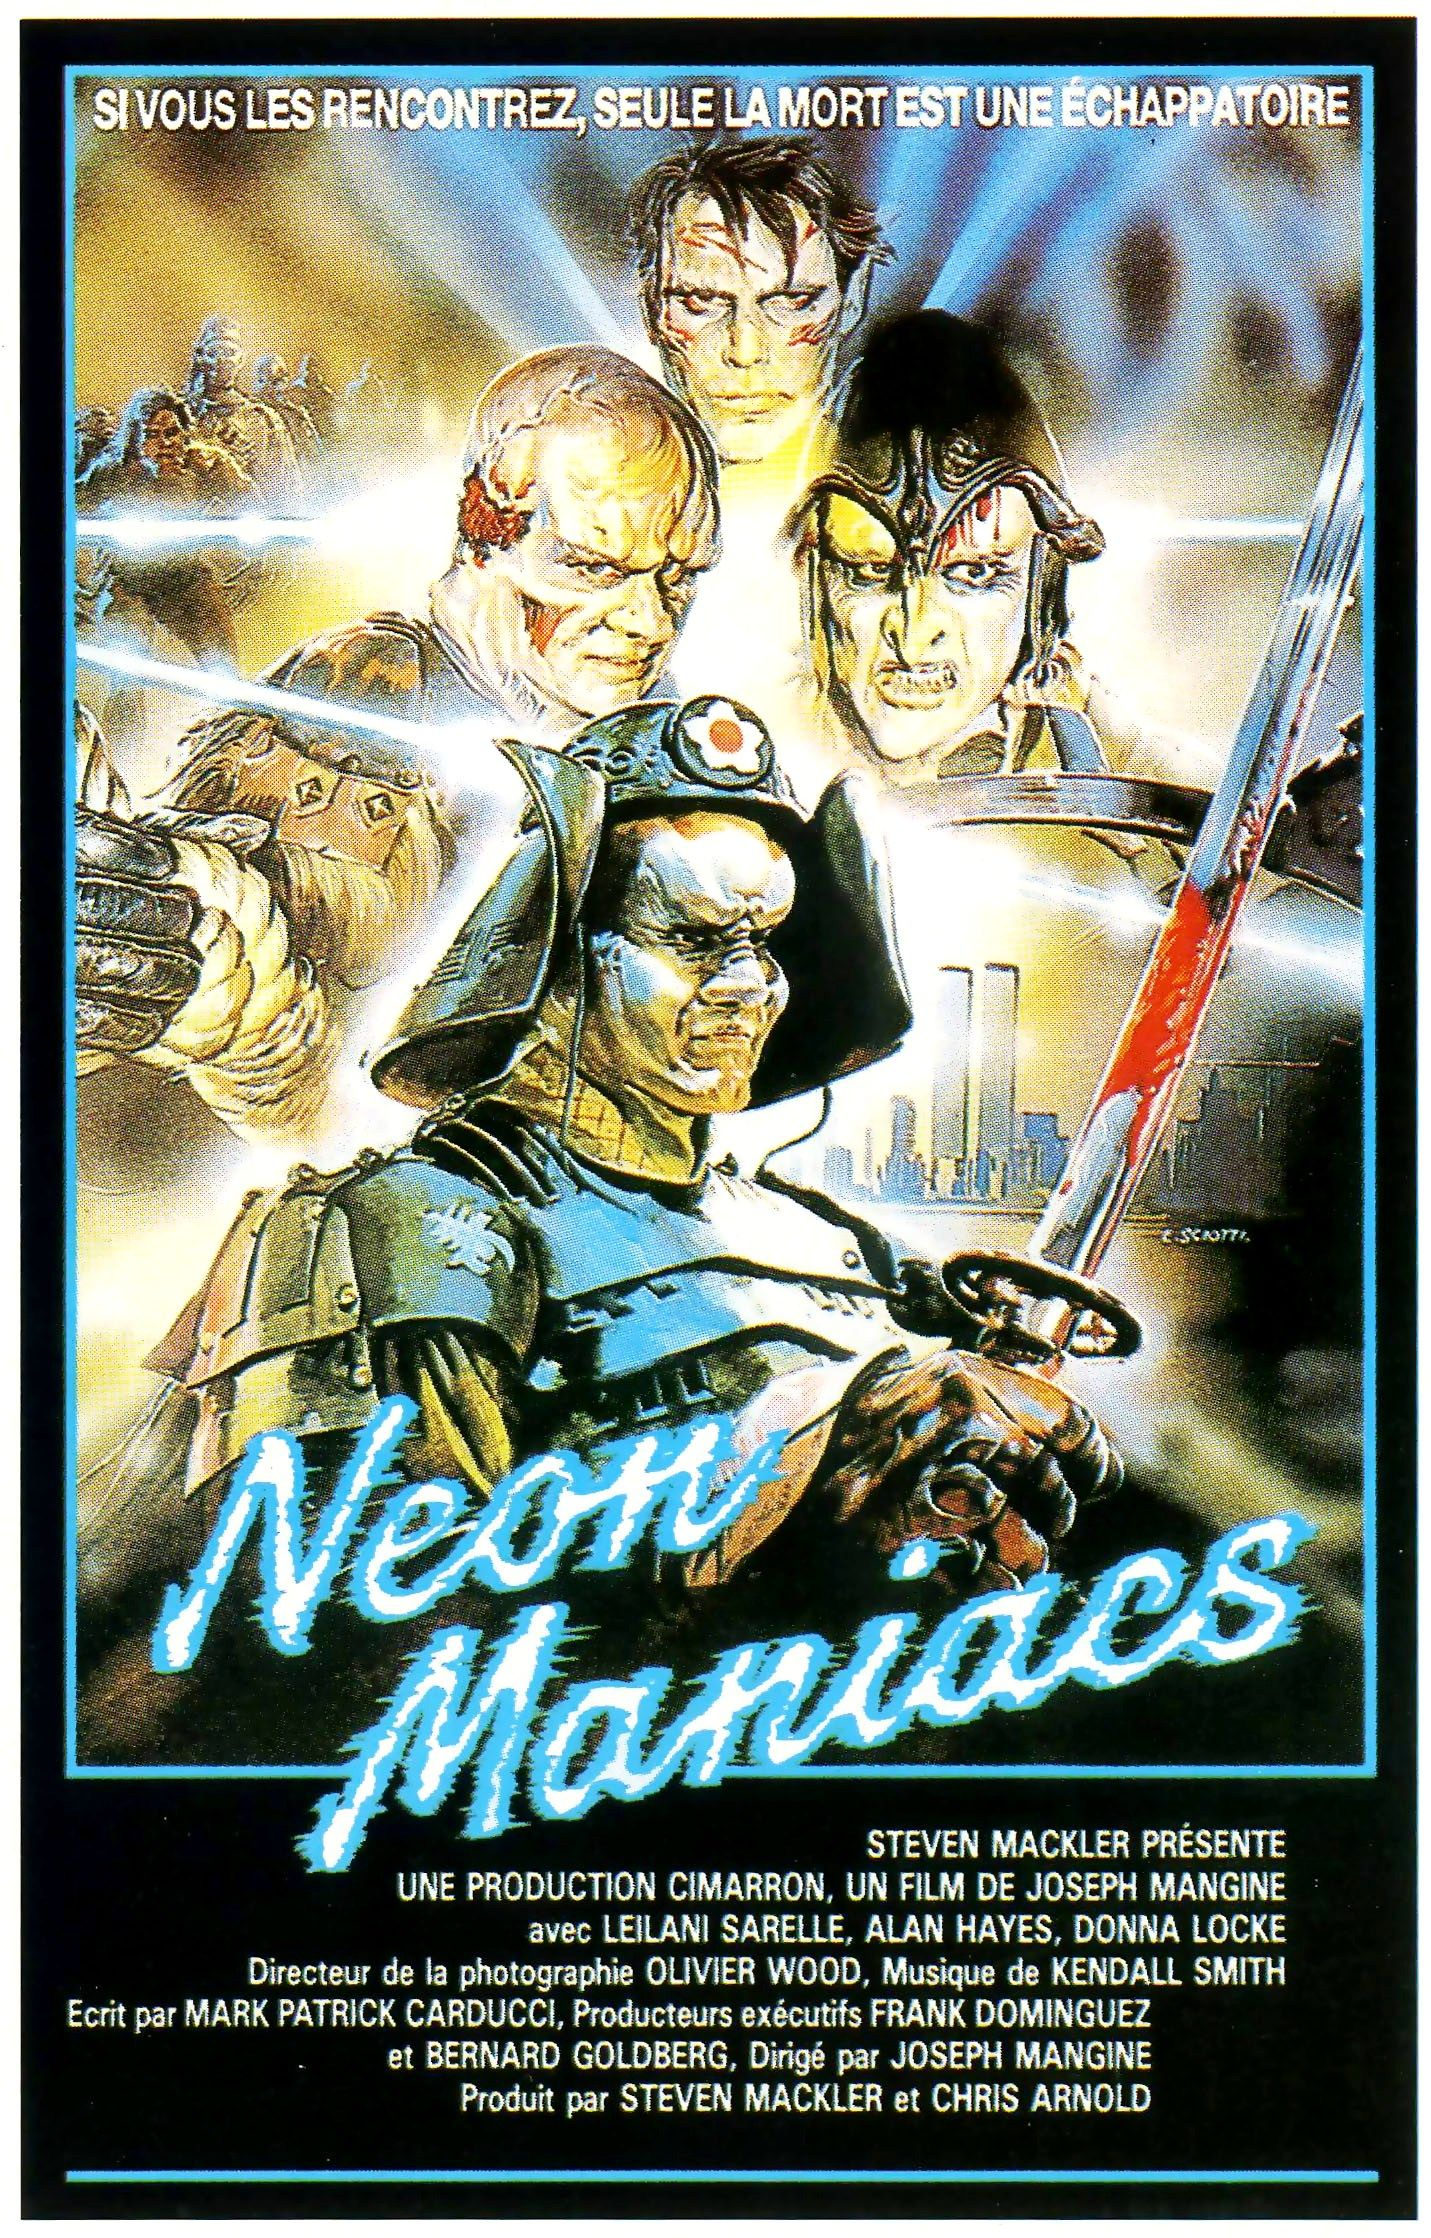 Neon 疯子 French poster